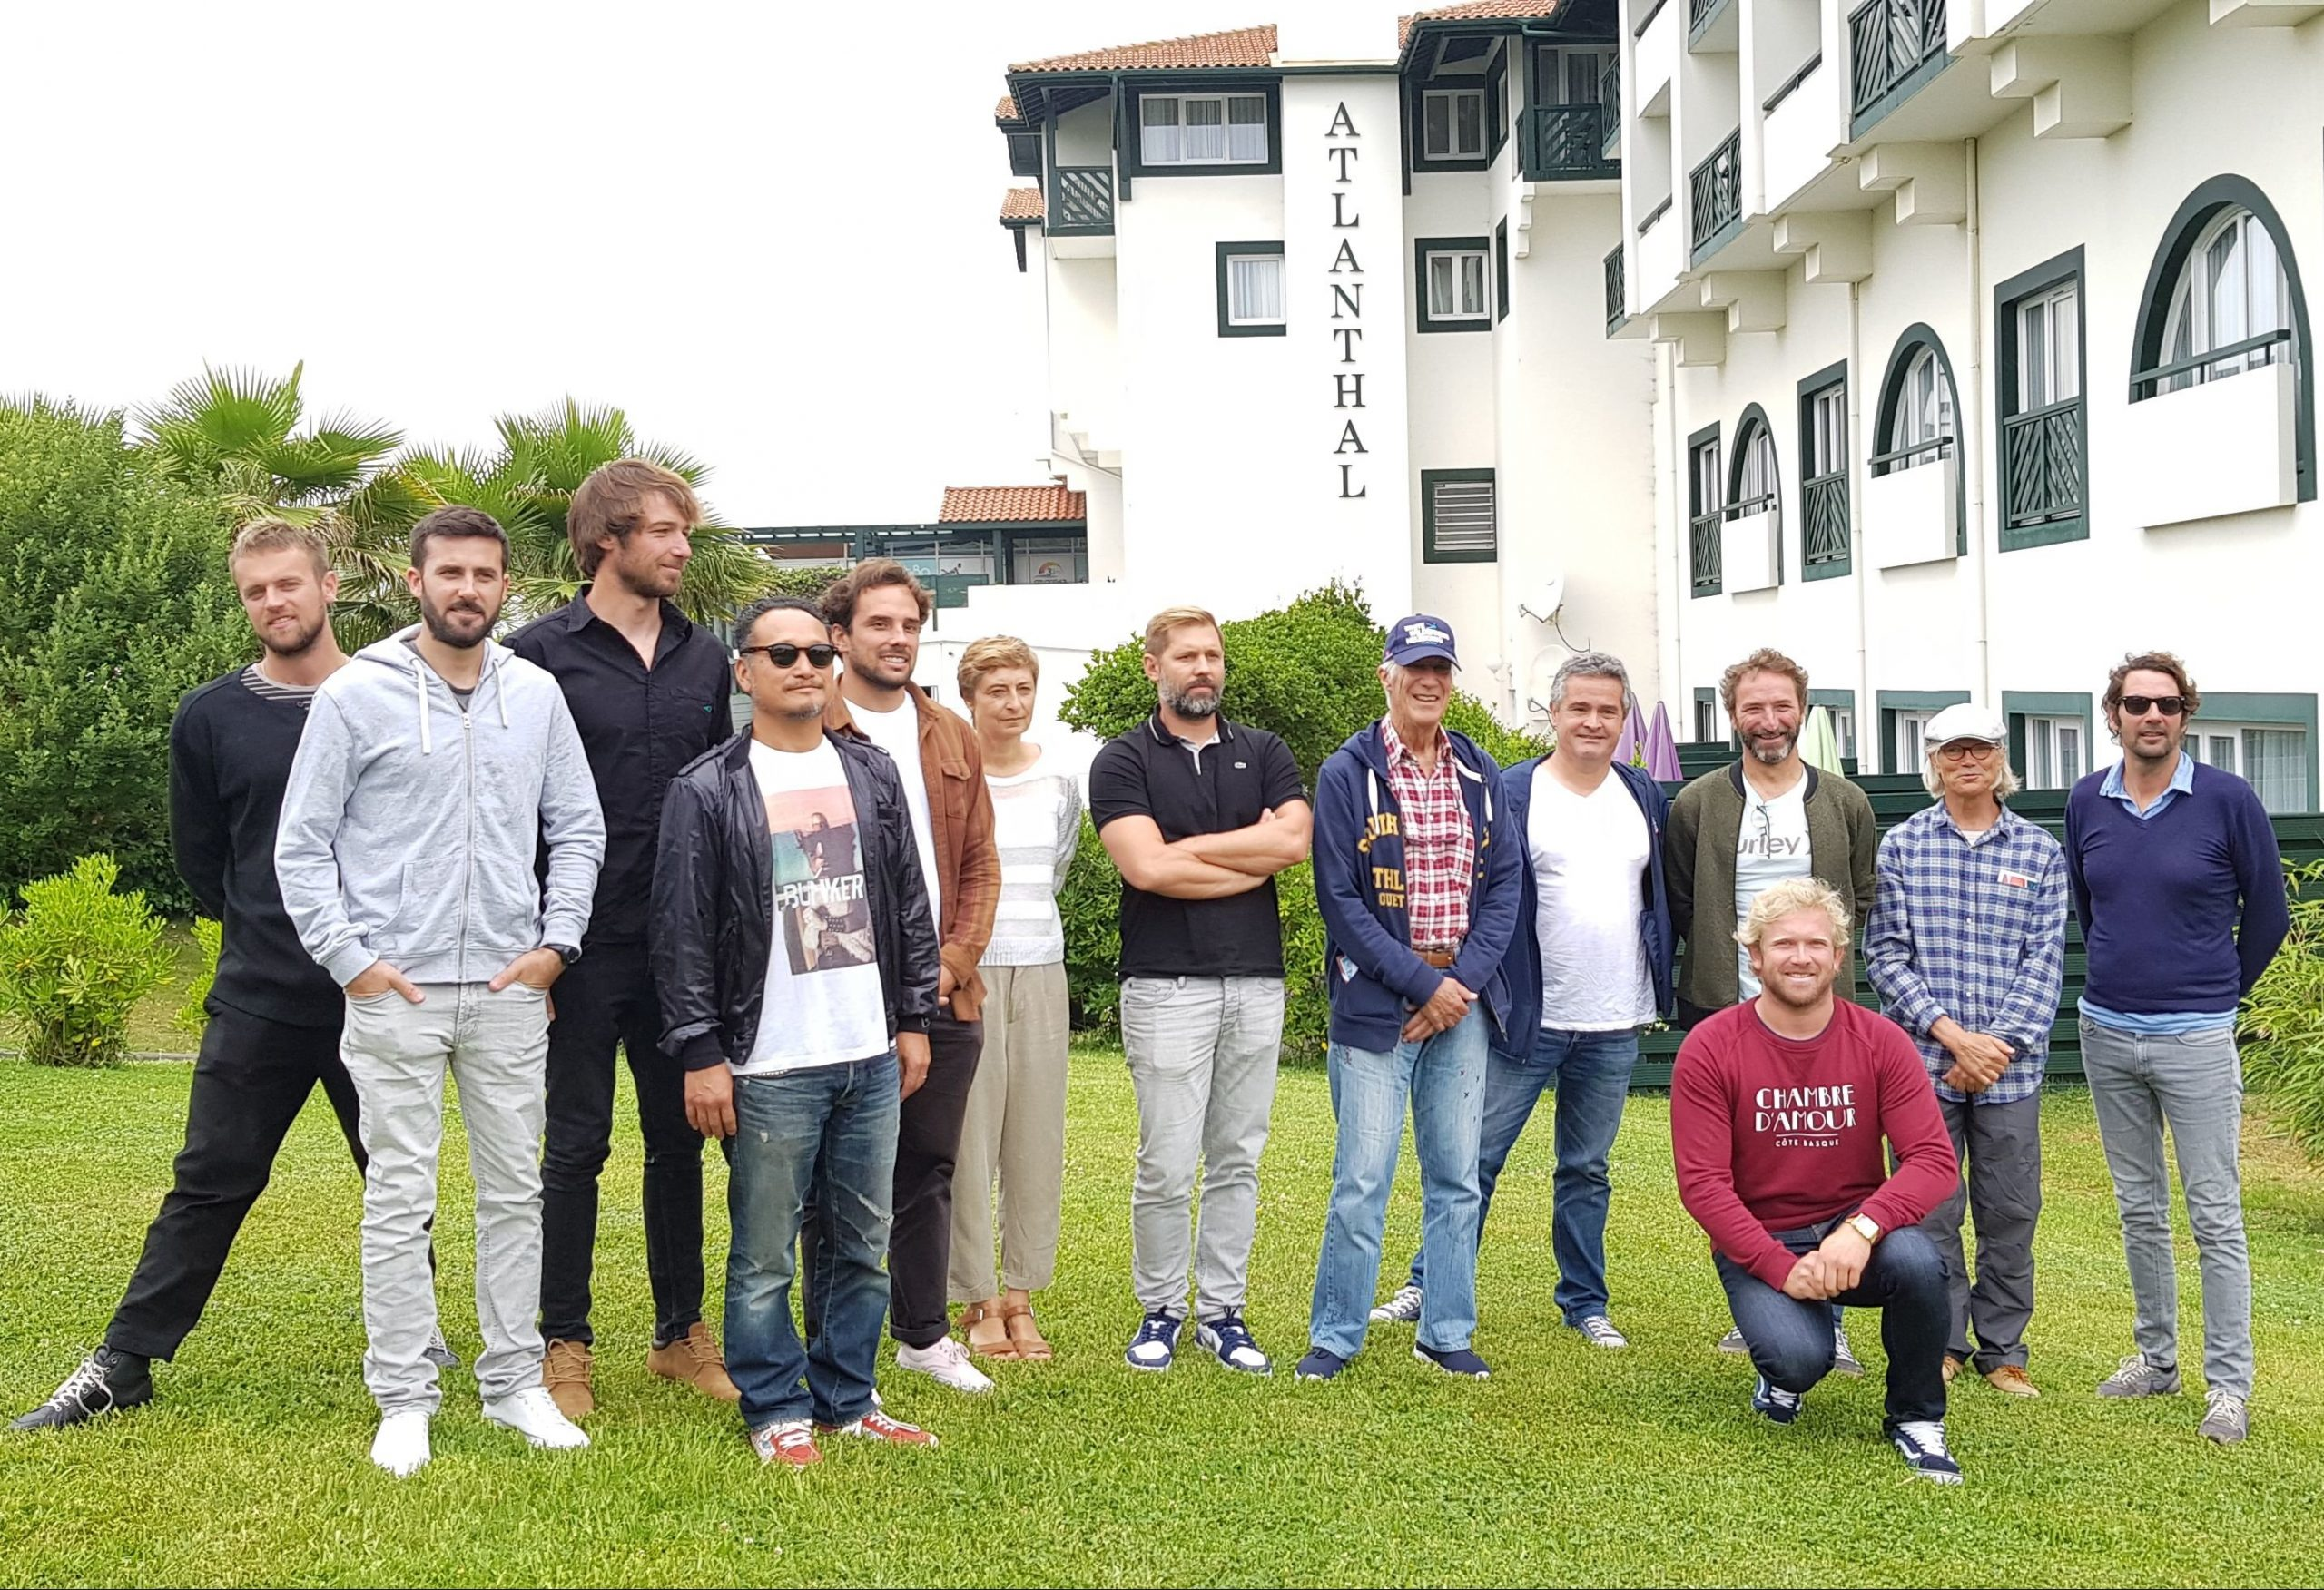 Directors and members of the Jury of the 16th edition of the International Surf Film Festival Anglet, with Bruno Delaye, the Festival Organiser.